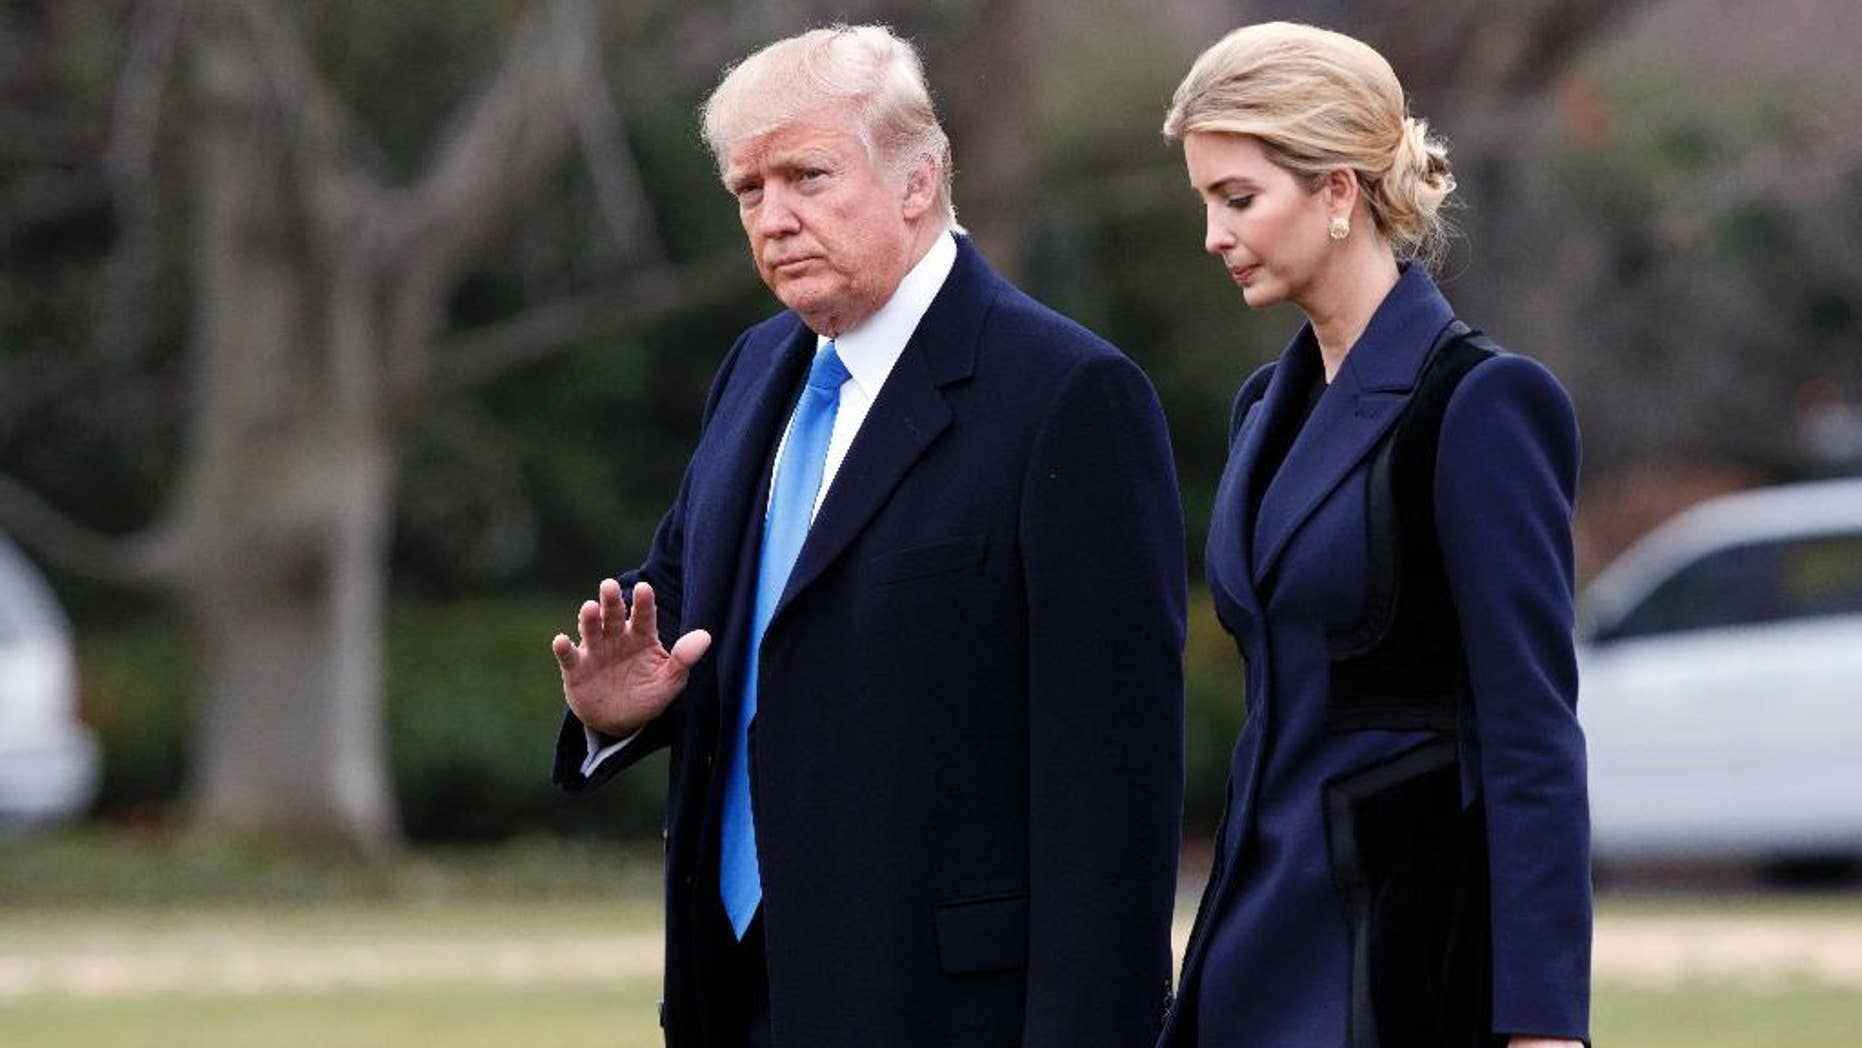 In this Feb. 1, 2017, photo, President Donald Trump, accompanied by his daughter Ivanka, waves as they walk to board Marine One on the South Lawn of the White House in Washington. She may have no official White House title. But Ivanka Trump is already proving that she is an unofficial power player. The first daughter has made clear that she wants to work on policy and support her father. (AP Photo/Evan Vucci)